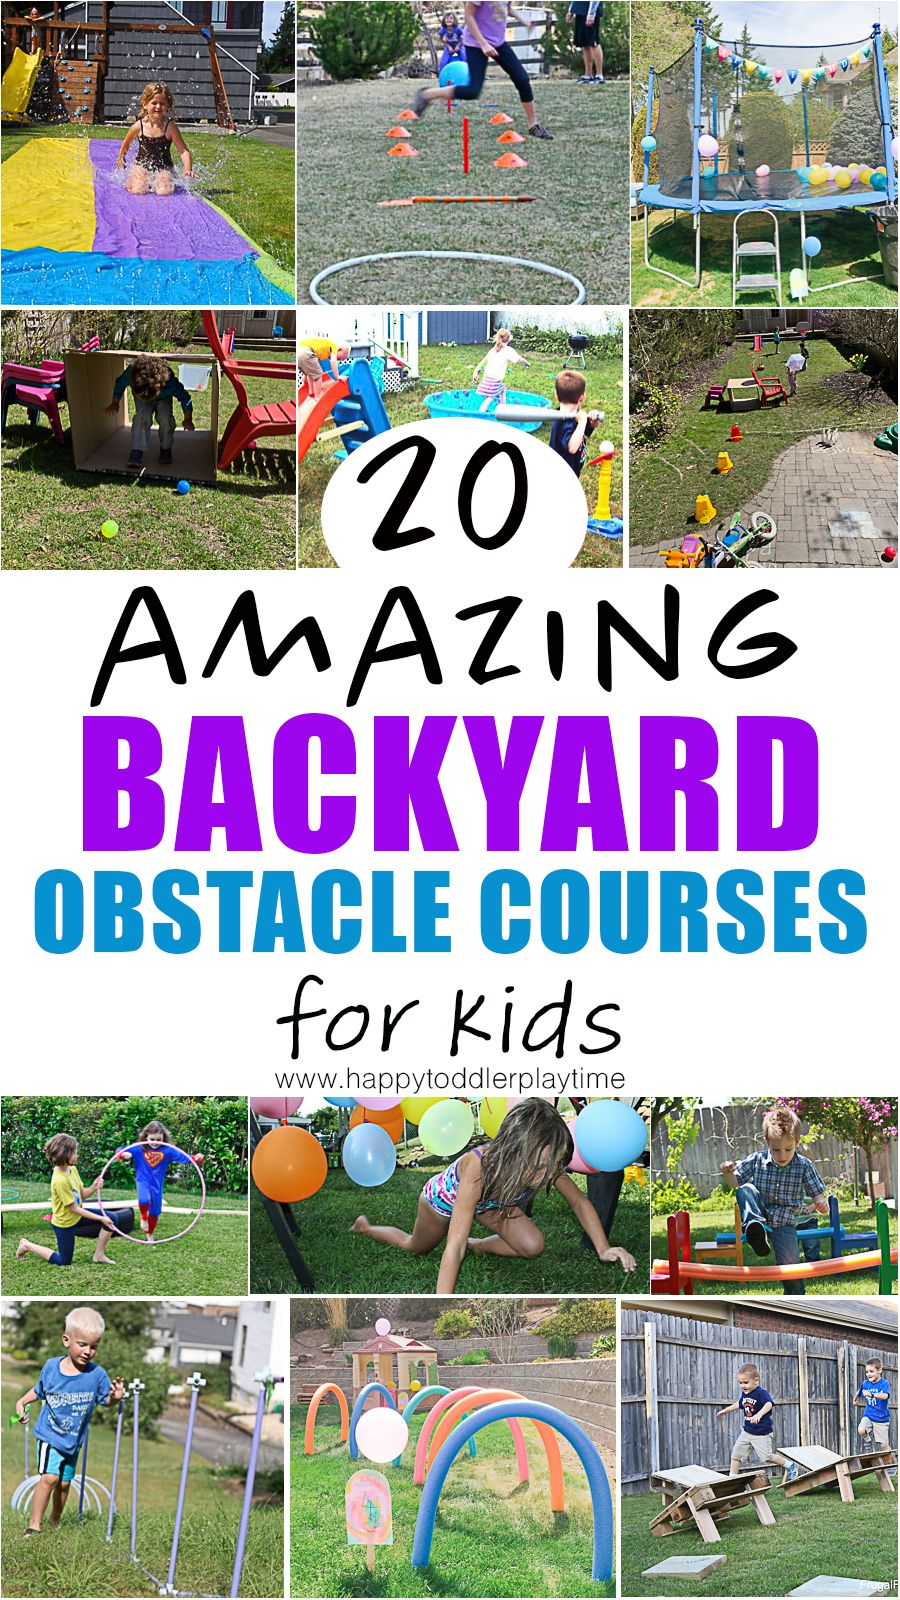 20 Amazing Backyard Obstacle Courses Happy Toddler Playtime Kids Obstacle Course Backyard Obstacle Course Summer Activities Backyard diy obstacle course